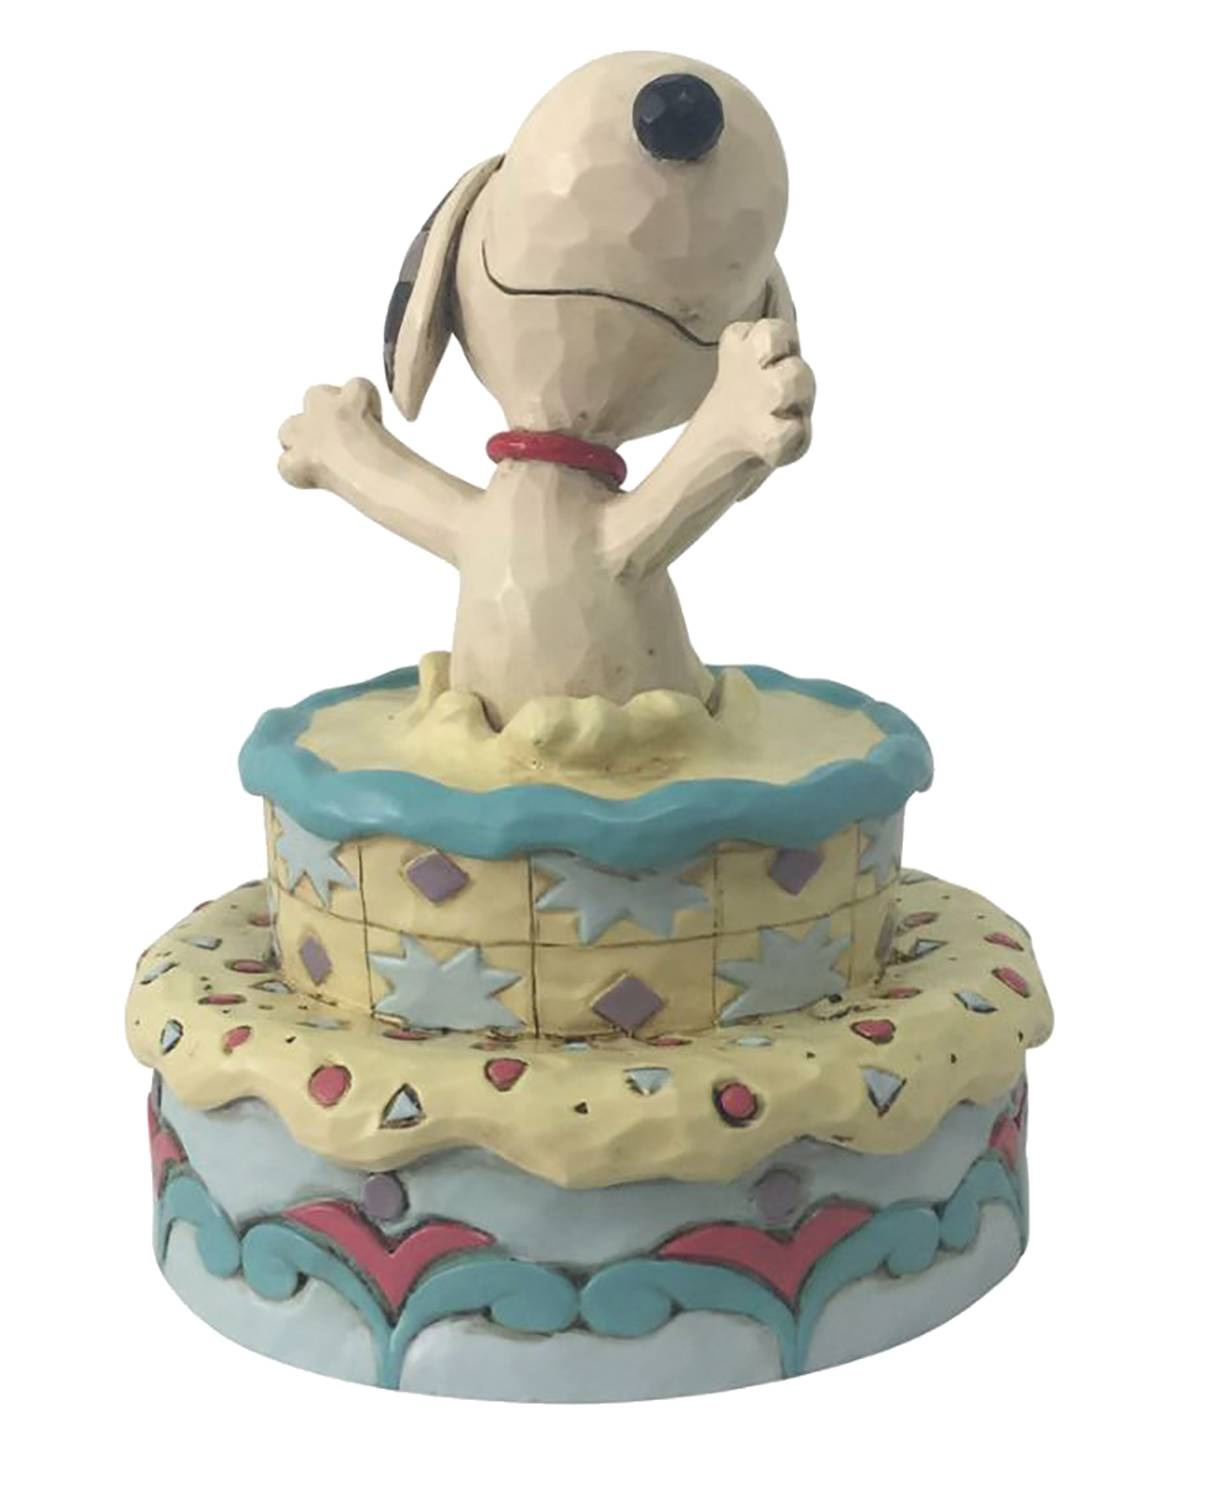 CHARLIE BROWN SNOOPY JUMPING OUT OF CAKE FIGURE